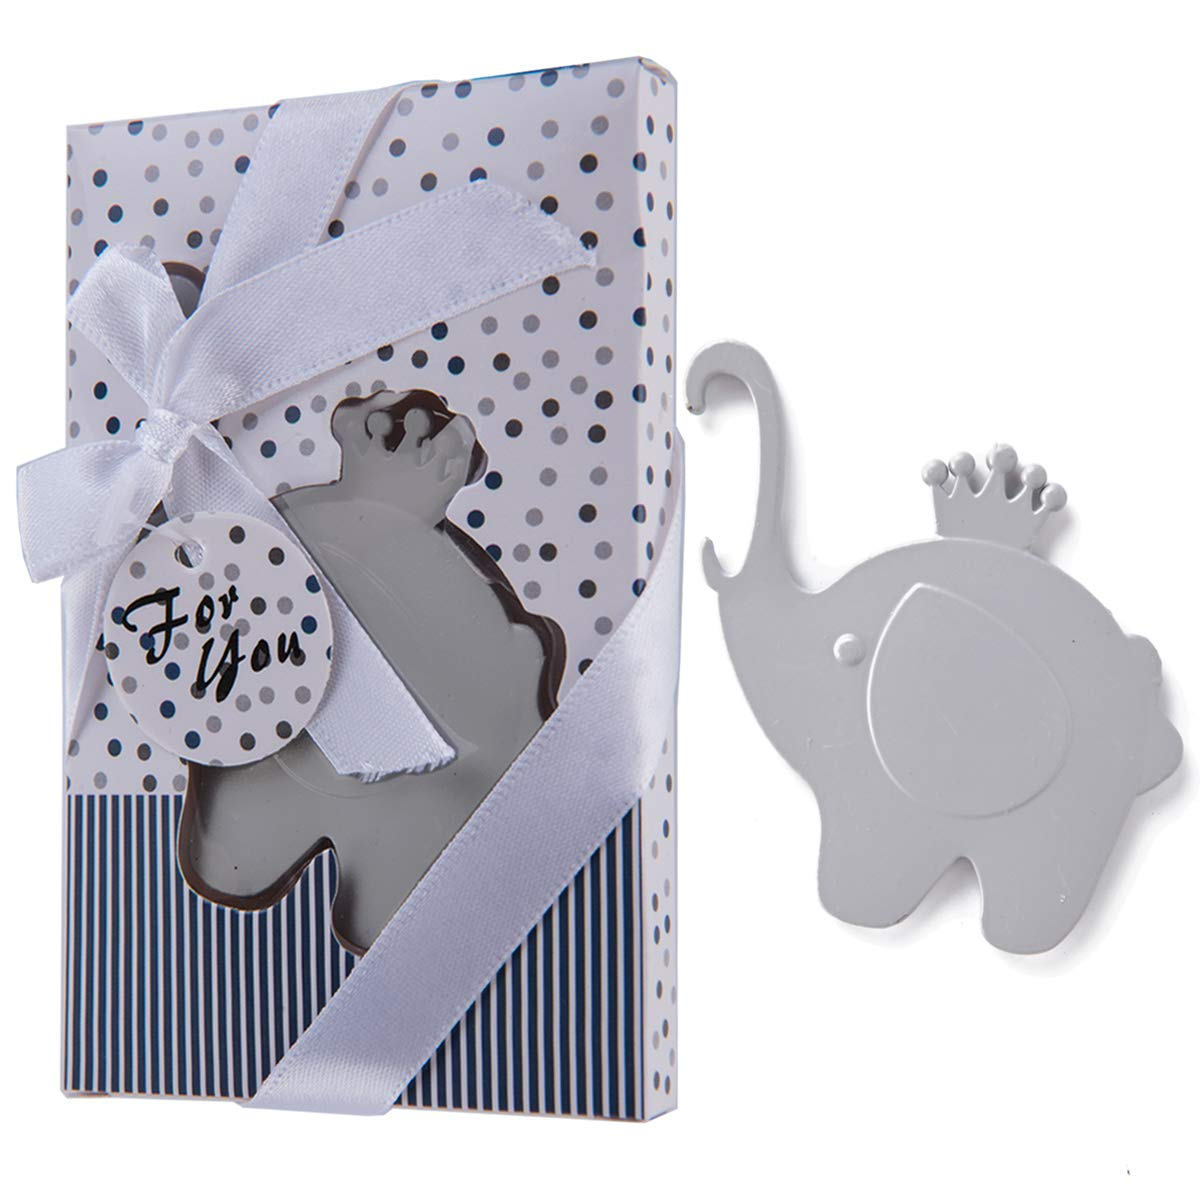 32 Pcs Elephant Themed Party Favors Beer Bottle Opener for Baby Shower Souvenirs for Guests, Baby Boy 1st 2nd 3rd Birthday Keepsake Return Gift with Individual Gift Package, NO DIY Required (Grey) by Morelegant